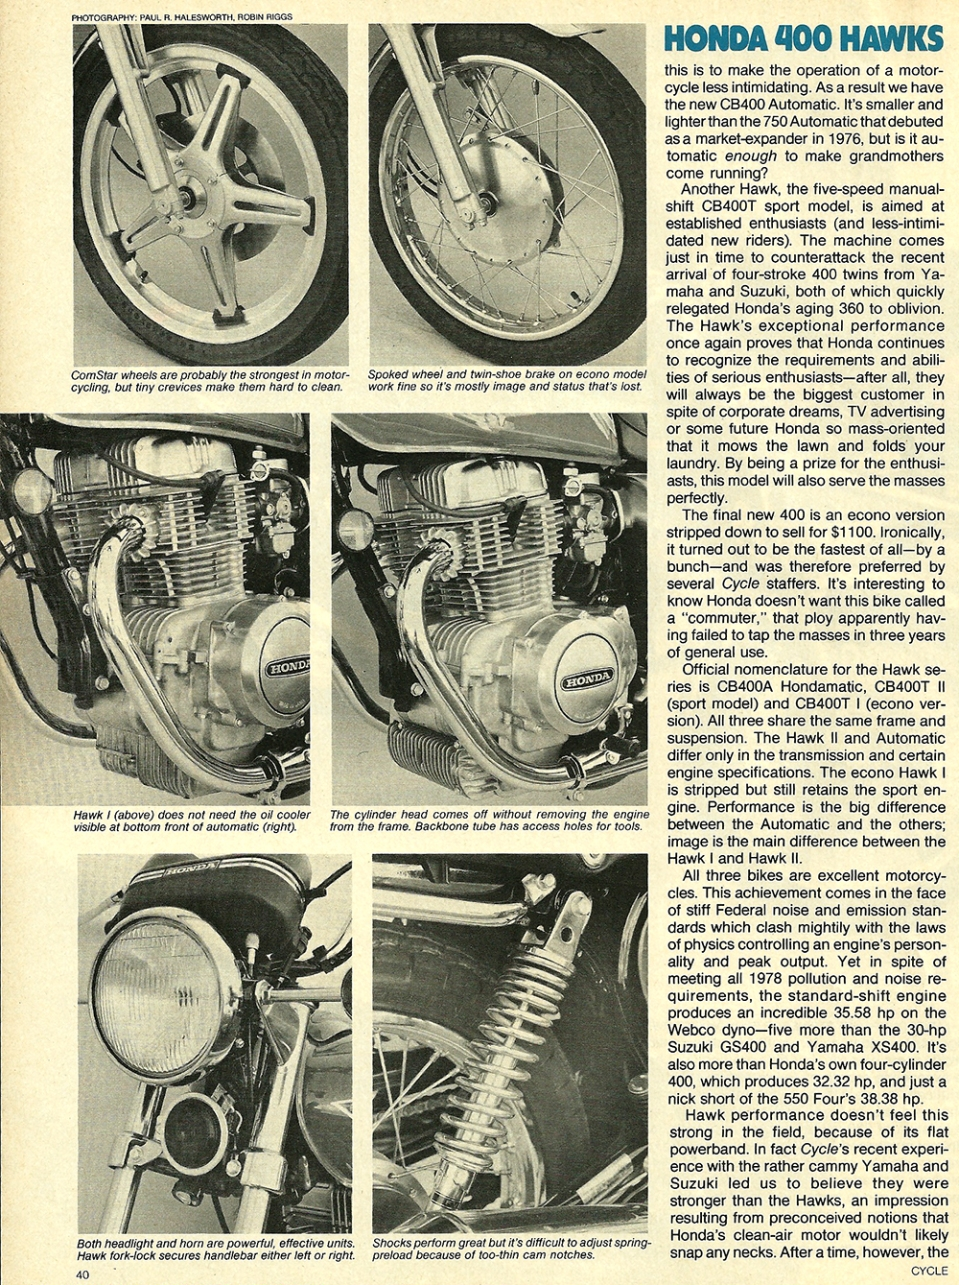 1977-honda-hawk-CB400T-400-road-test-cycle-test-motorcycle-03